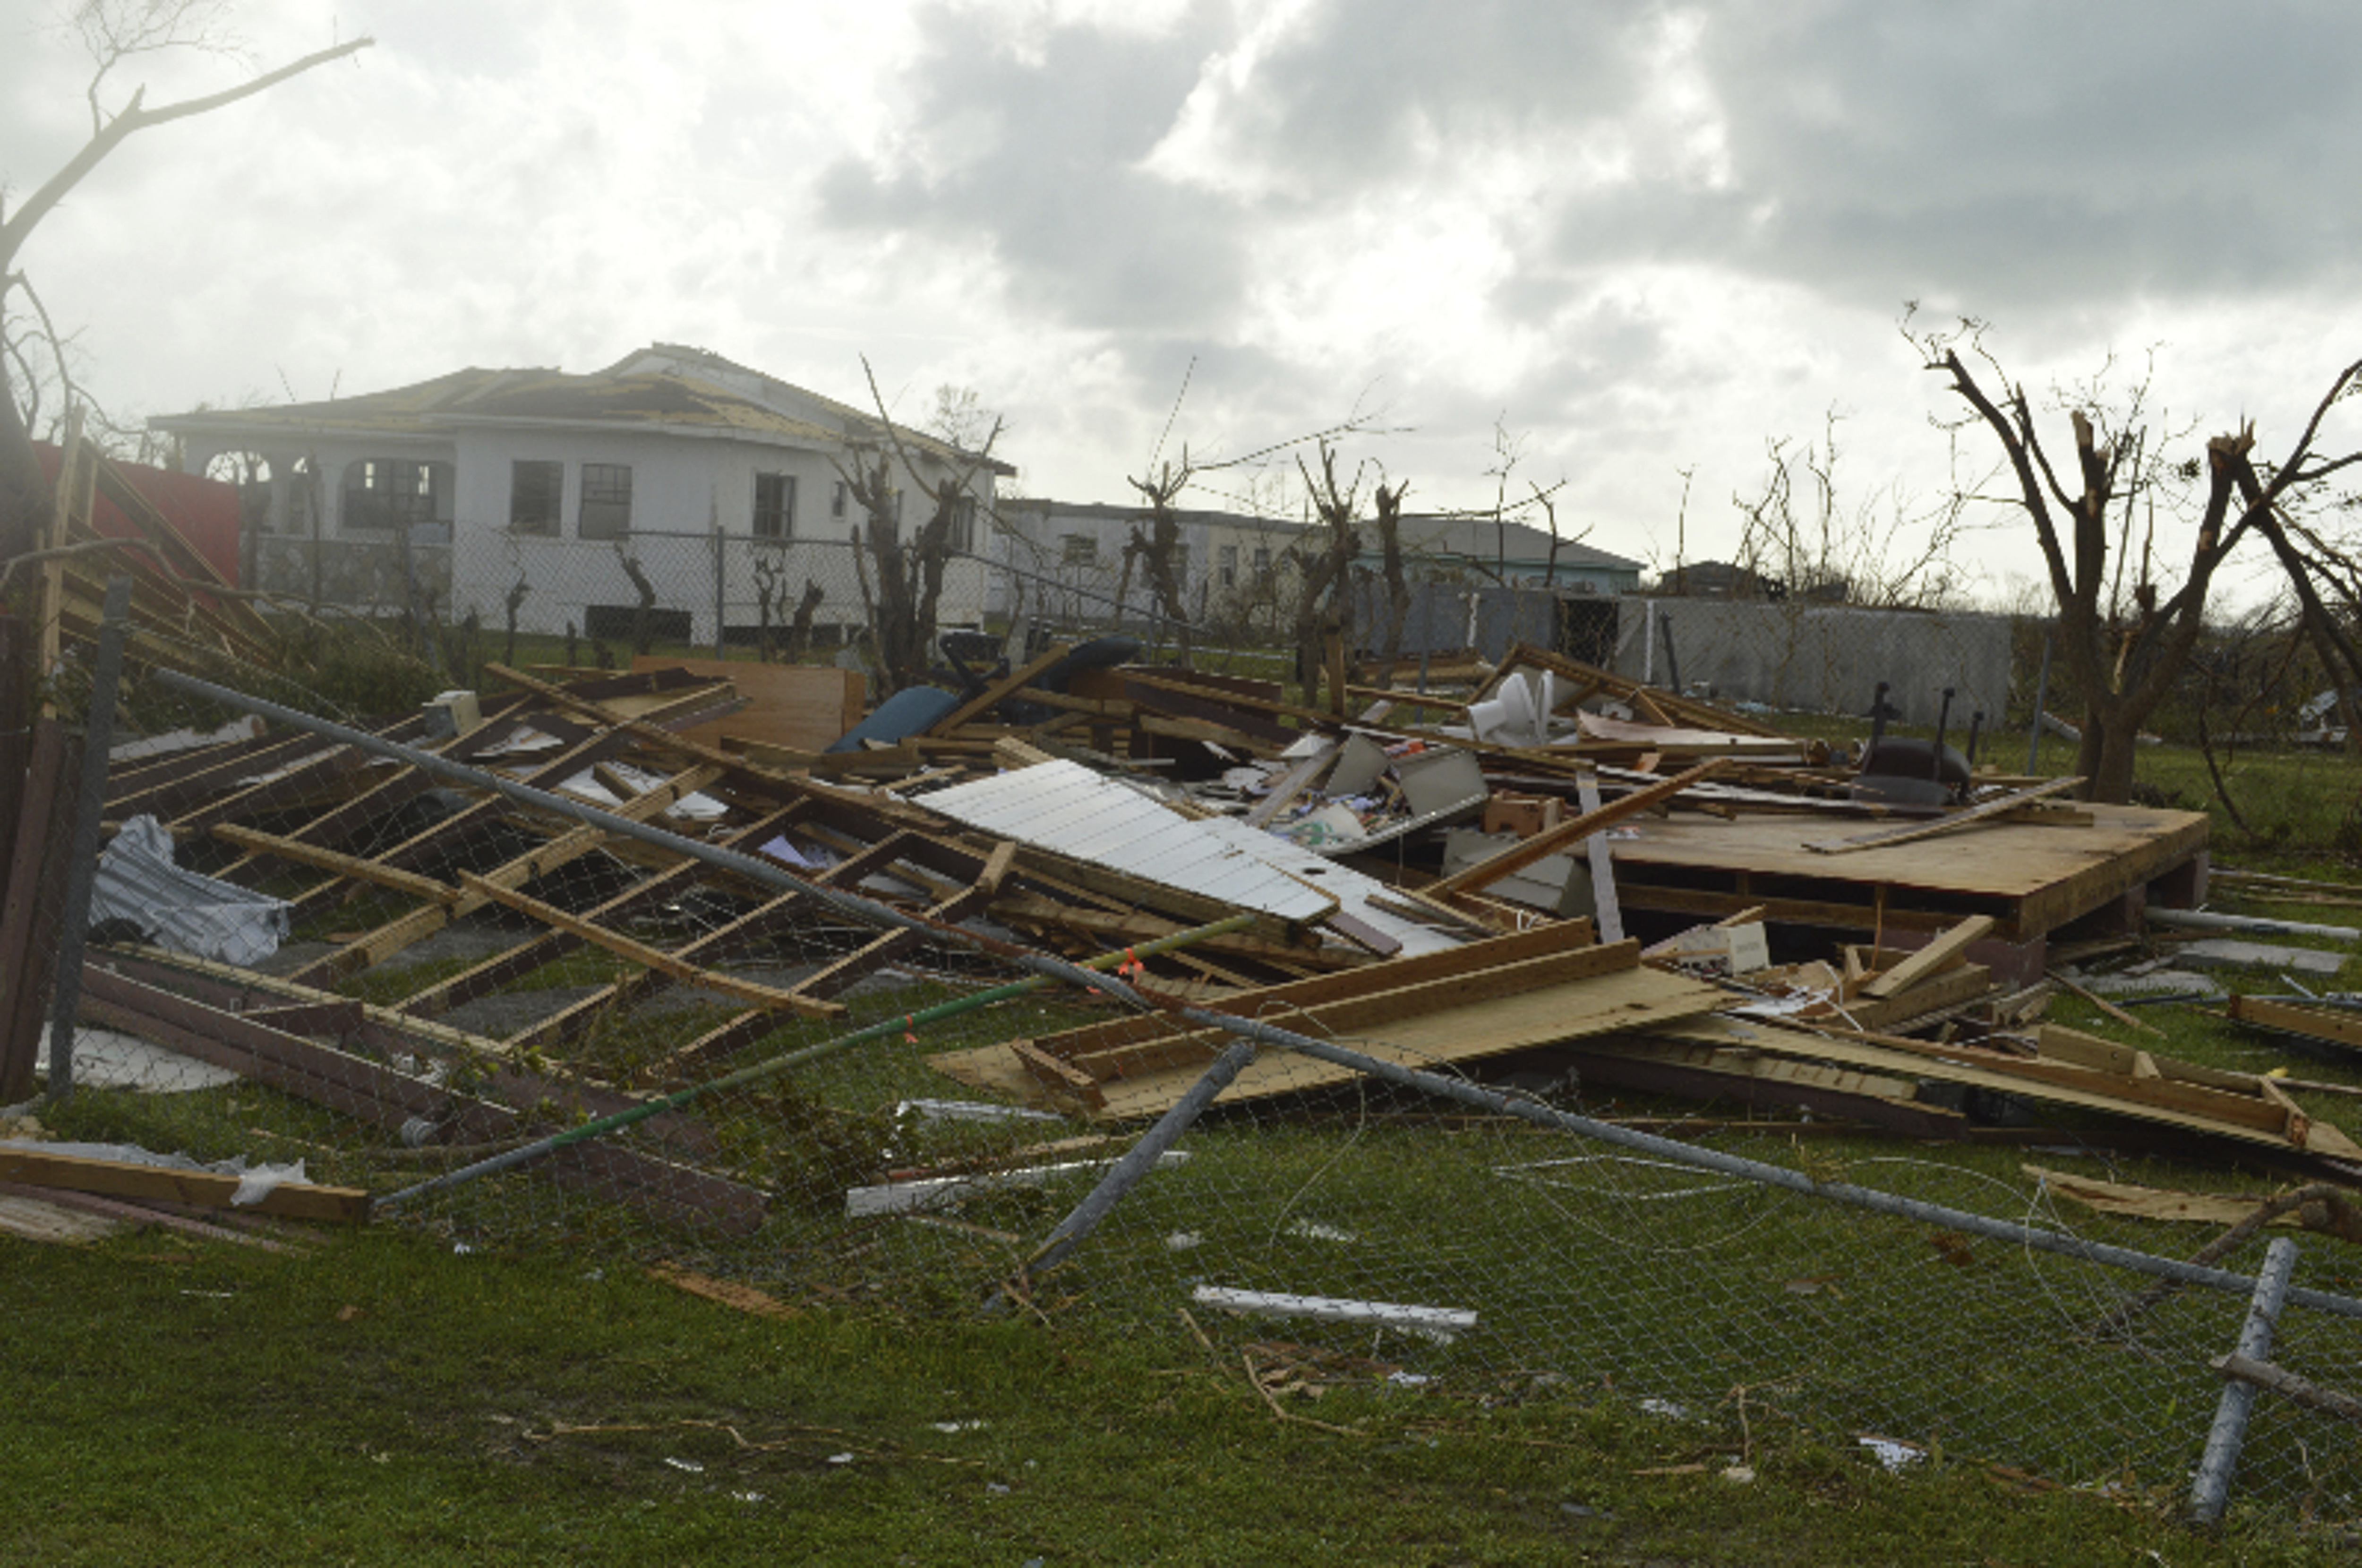 "<div class=""meta image-caption""><div class=""origin-logo origin-image none""><span>none</span></div><span class=""caption-text"">In this Thursday, Sept. 7, 2017, photo, damage is left after Hurricane Irma hit Barbuda. (Anika E. Kentish/AP Photo)</span></div>"